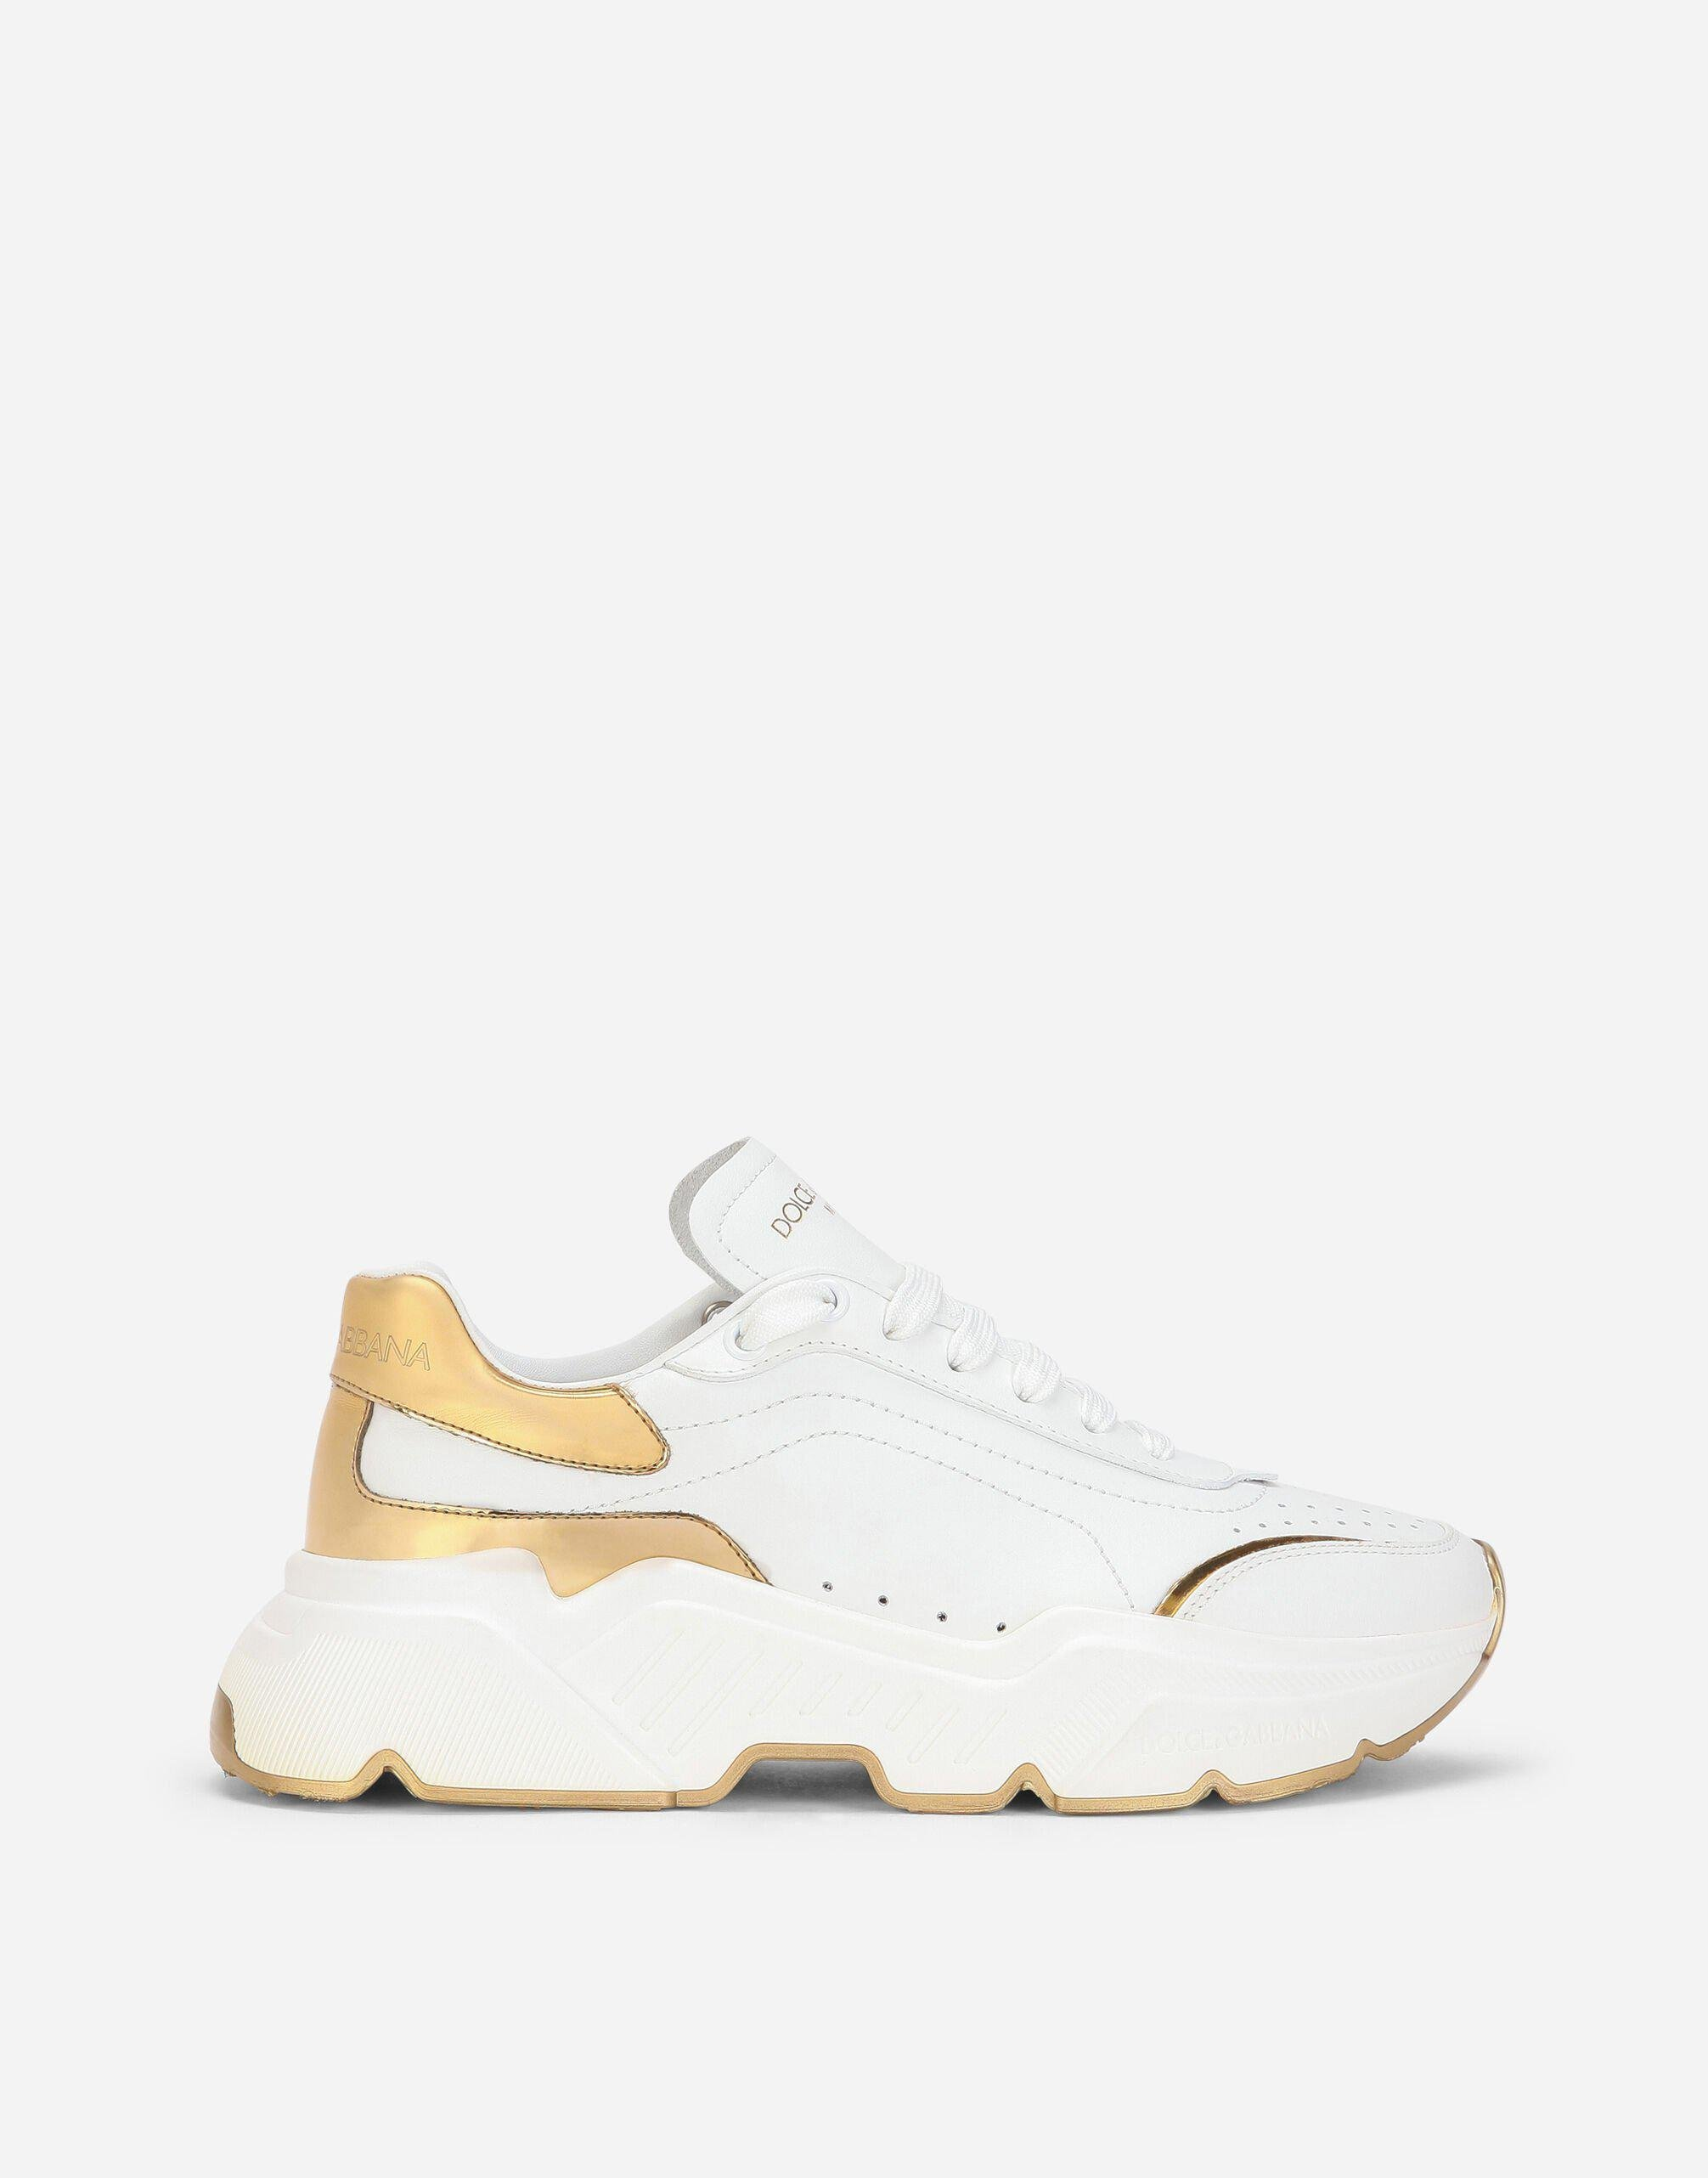 Nappa leather Daymaster sneakers